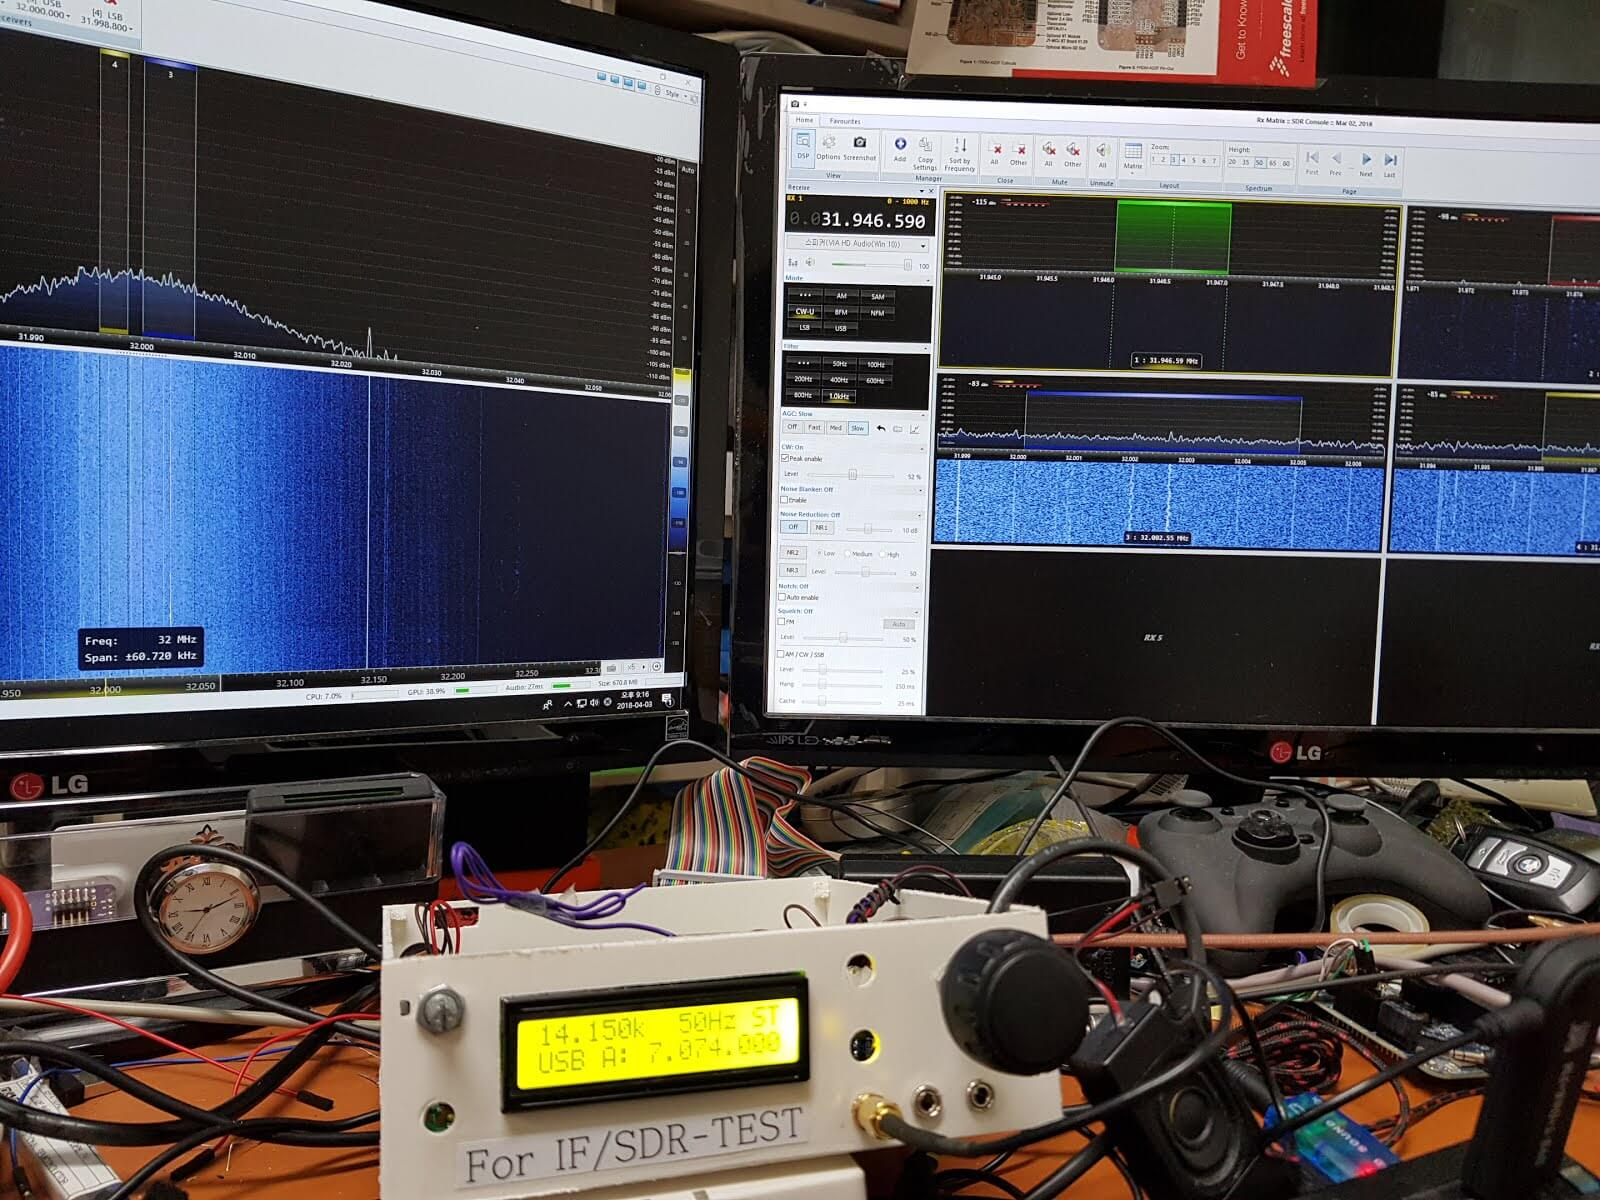 uBITX with RTL-SDR Panadapter